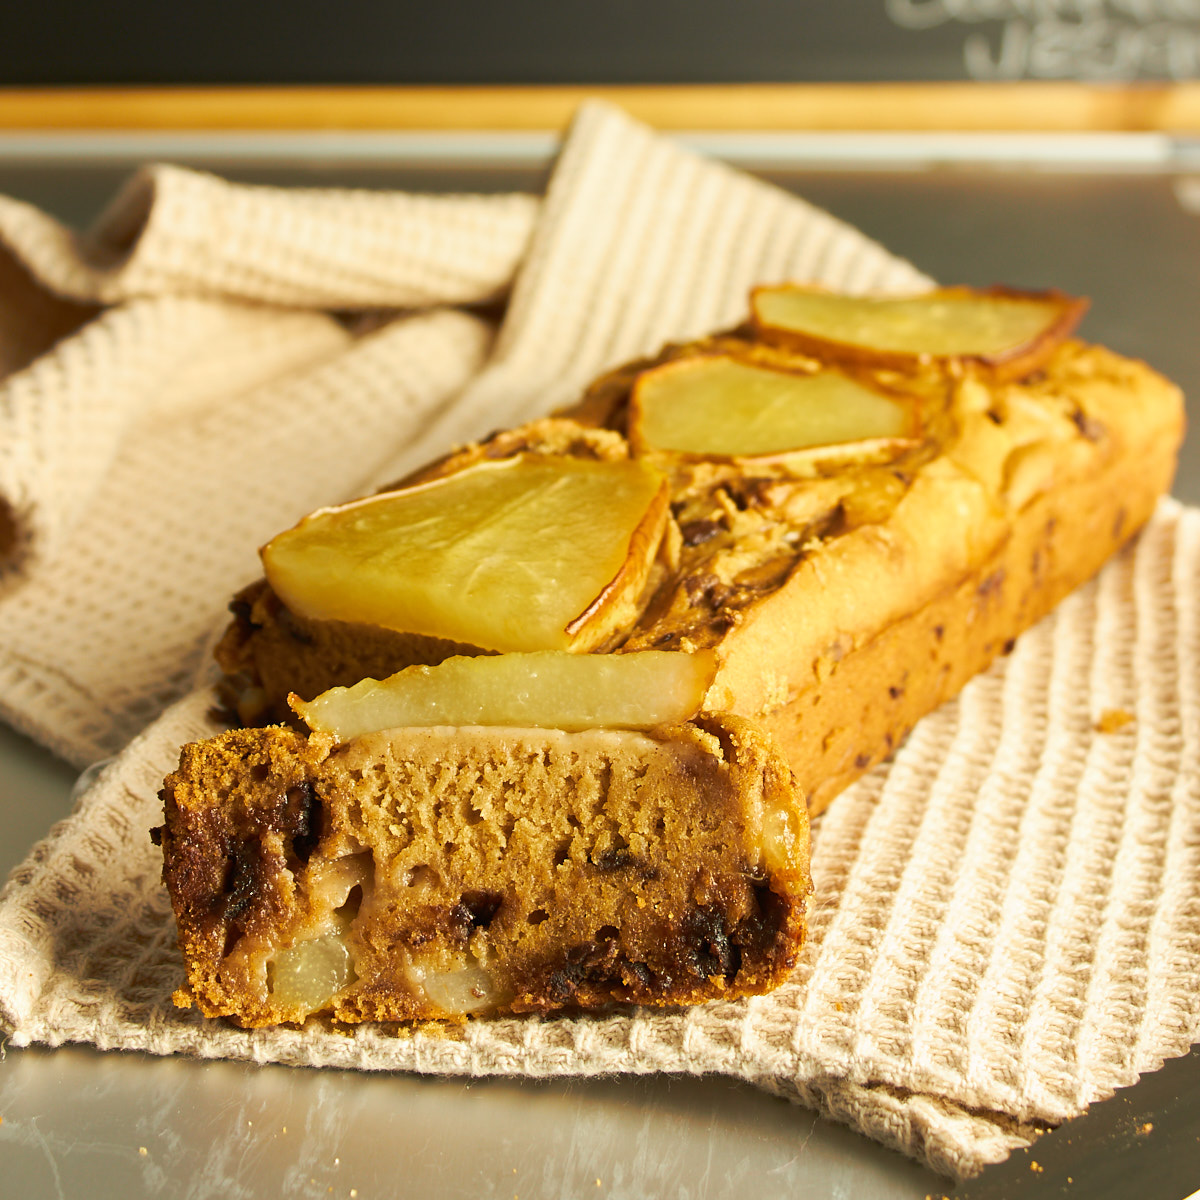 Gluten Free Pear and Choc Chip Loaf